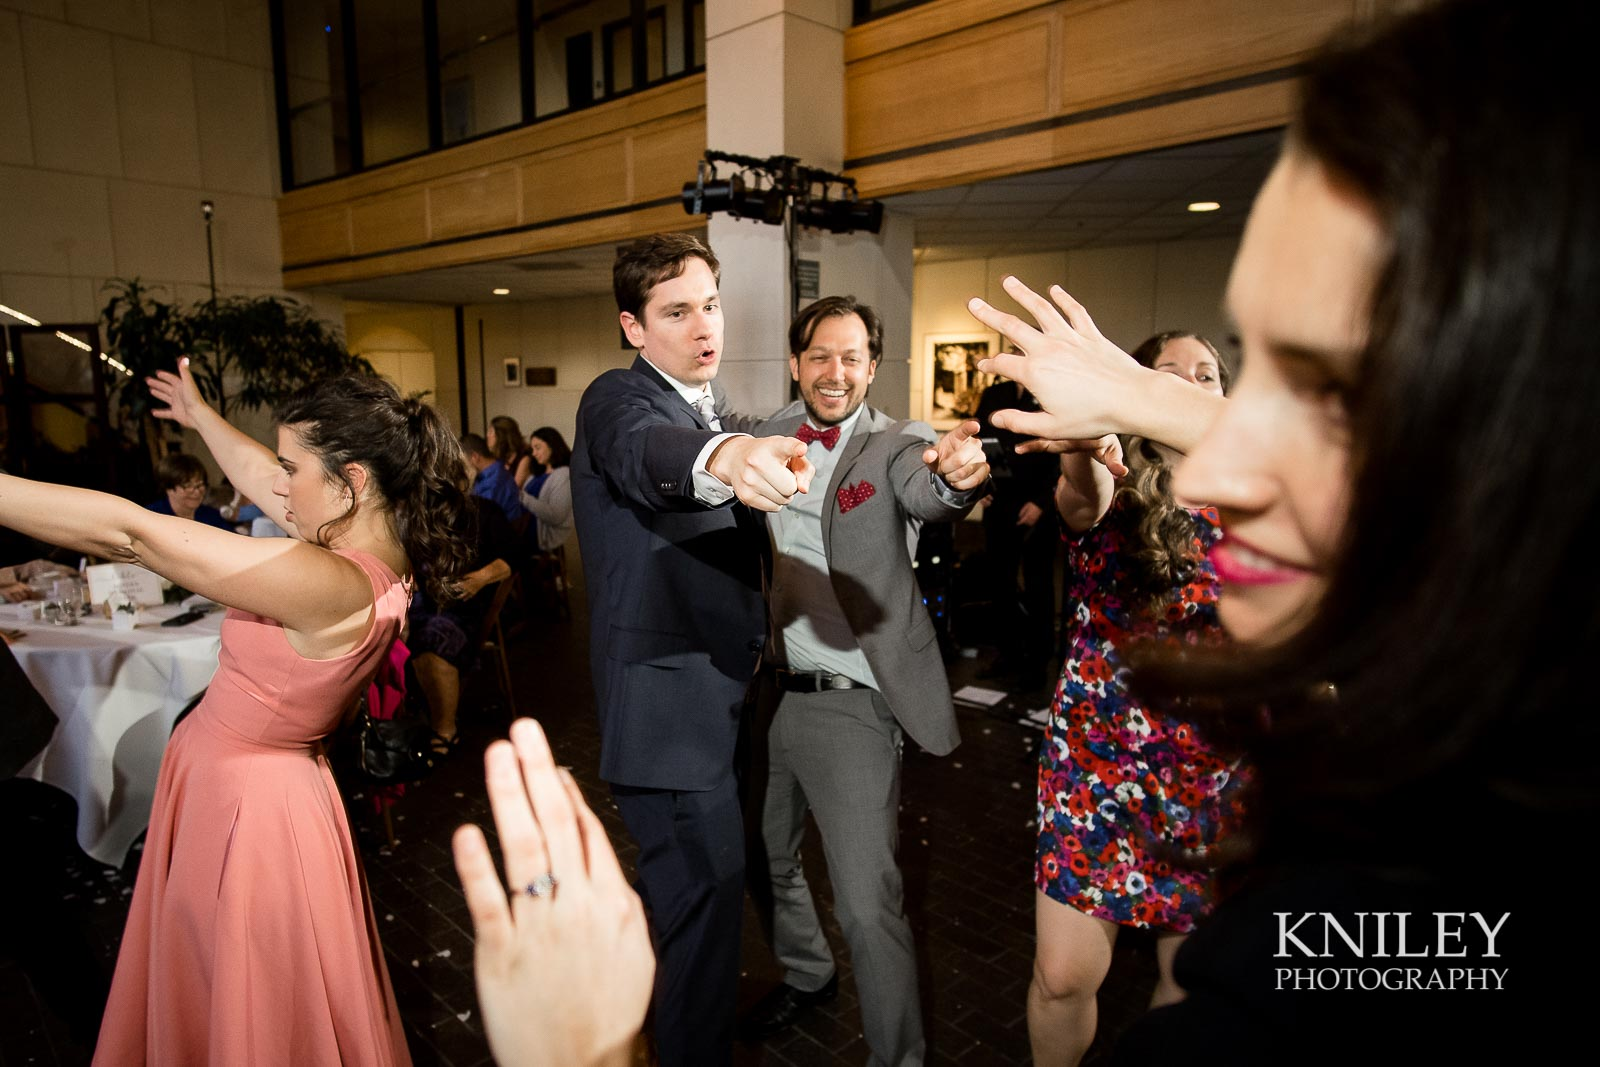 72-Max-of-Eastman-Wedding-and-Reception-Rochester-NY-Kniley-Photography.jpg